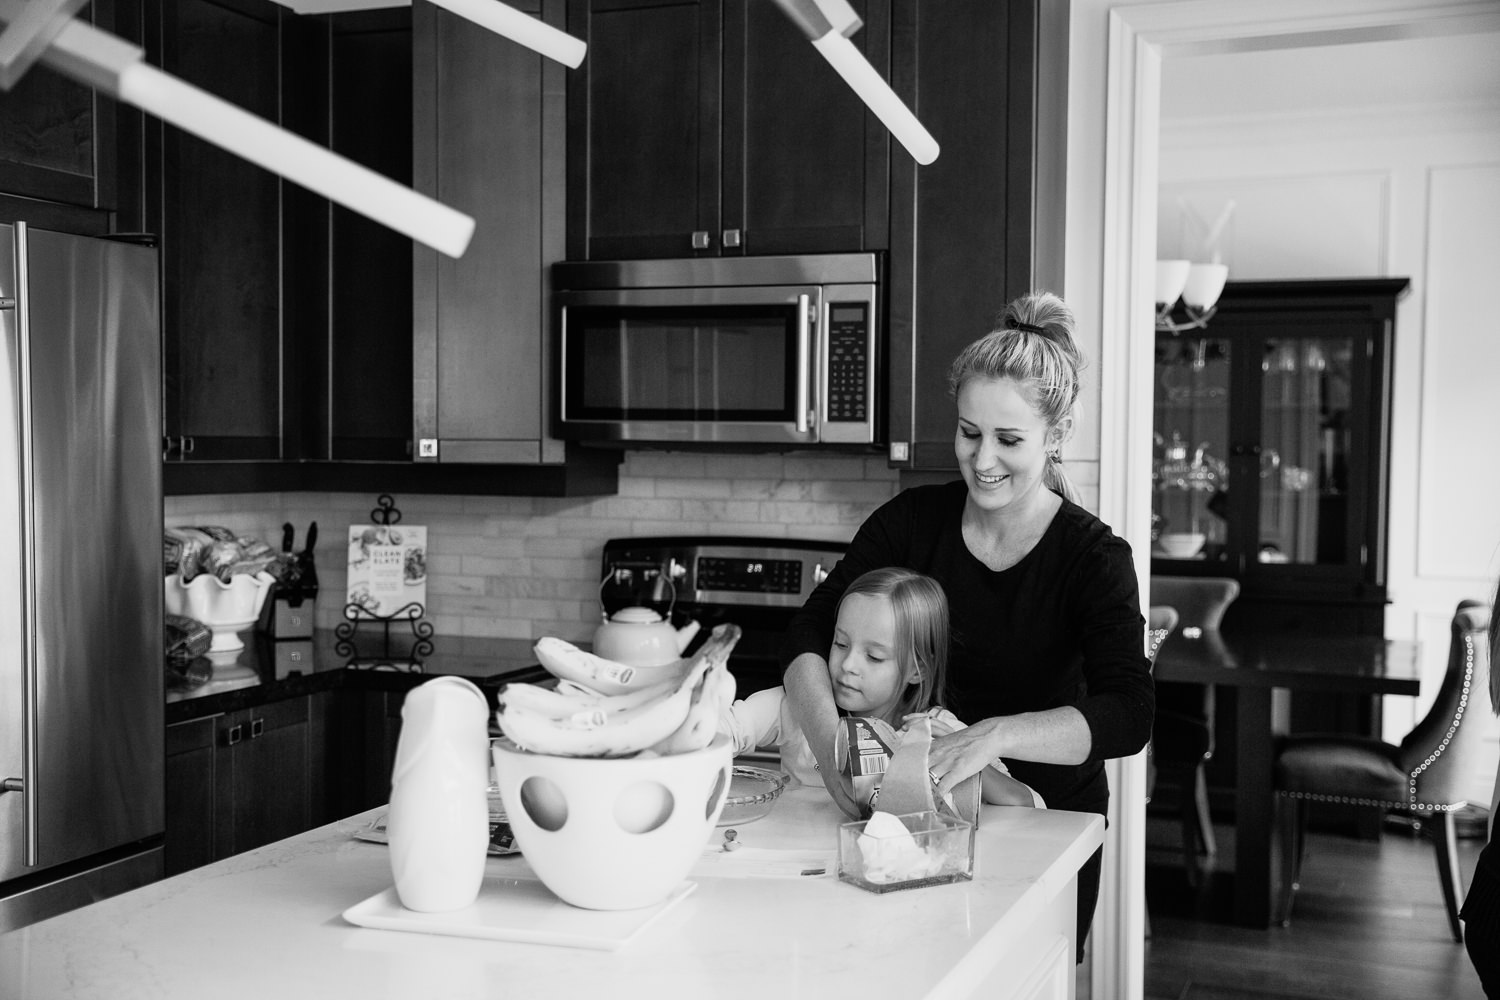 mom and 8 year old girl standing at kitchen island together, mother with arms around daughter preparing food - Barrie In-Home Photos